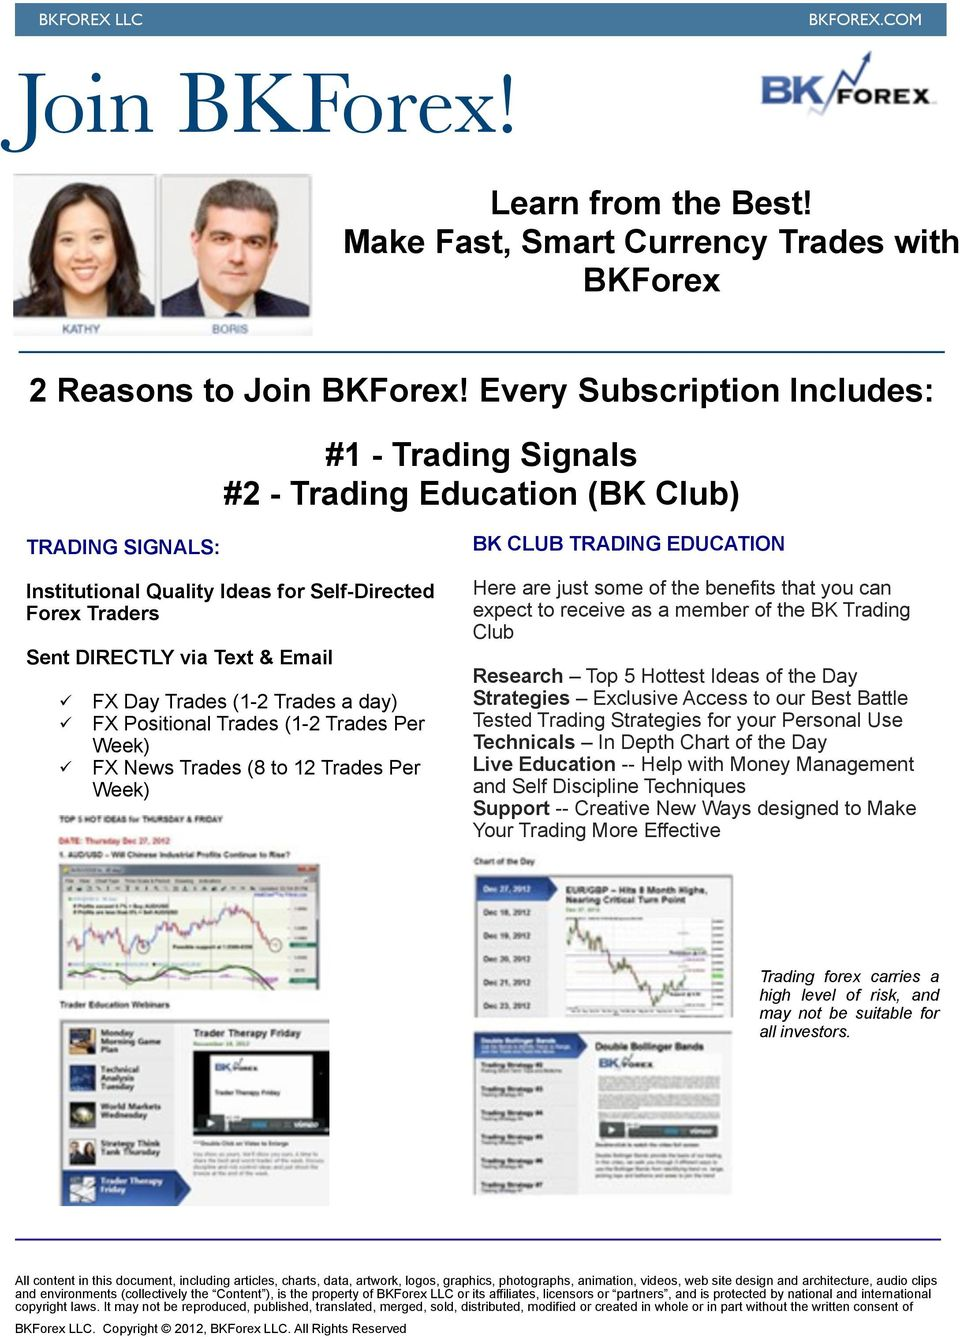 Day Trades (1-2 Trades a day) FX Positional Trades (1-2 Trades Per Week) FX News Trades (8 to 12 Trades Per Week) BK CLUB TRADING EDUCATION Here are just some of the benefits that you can expect to